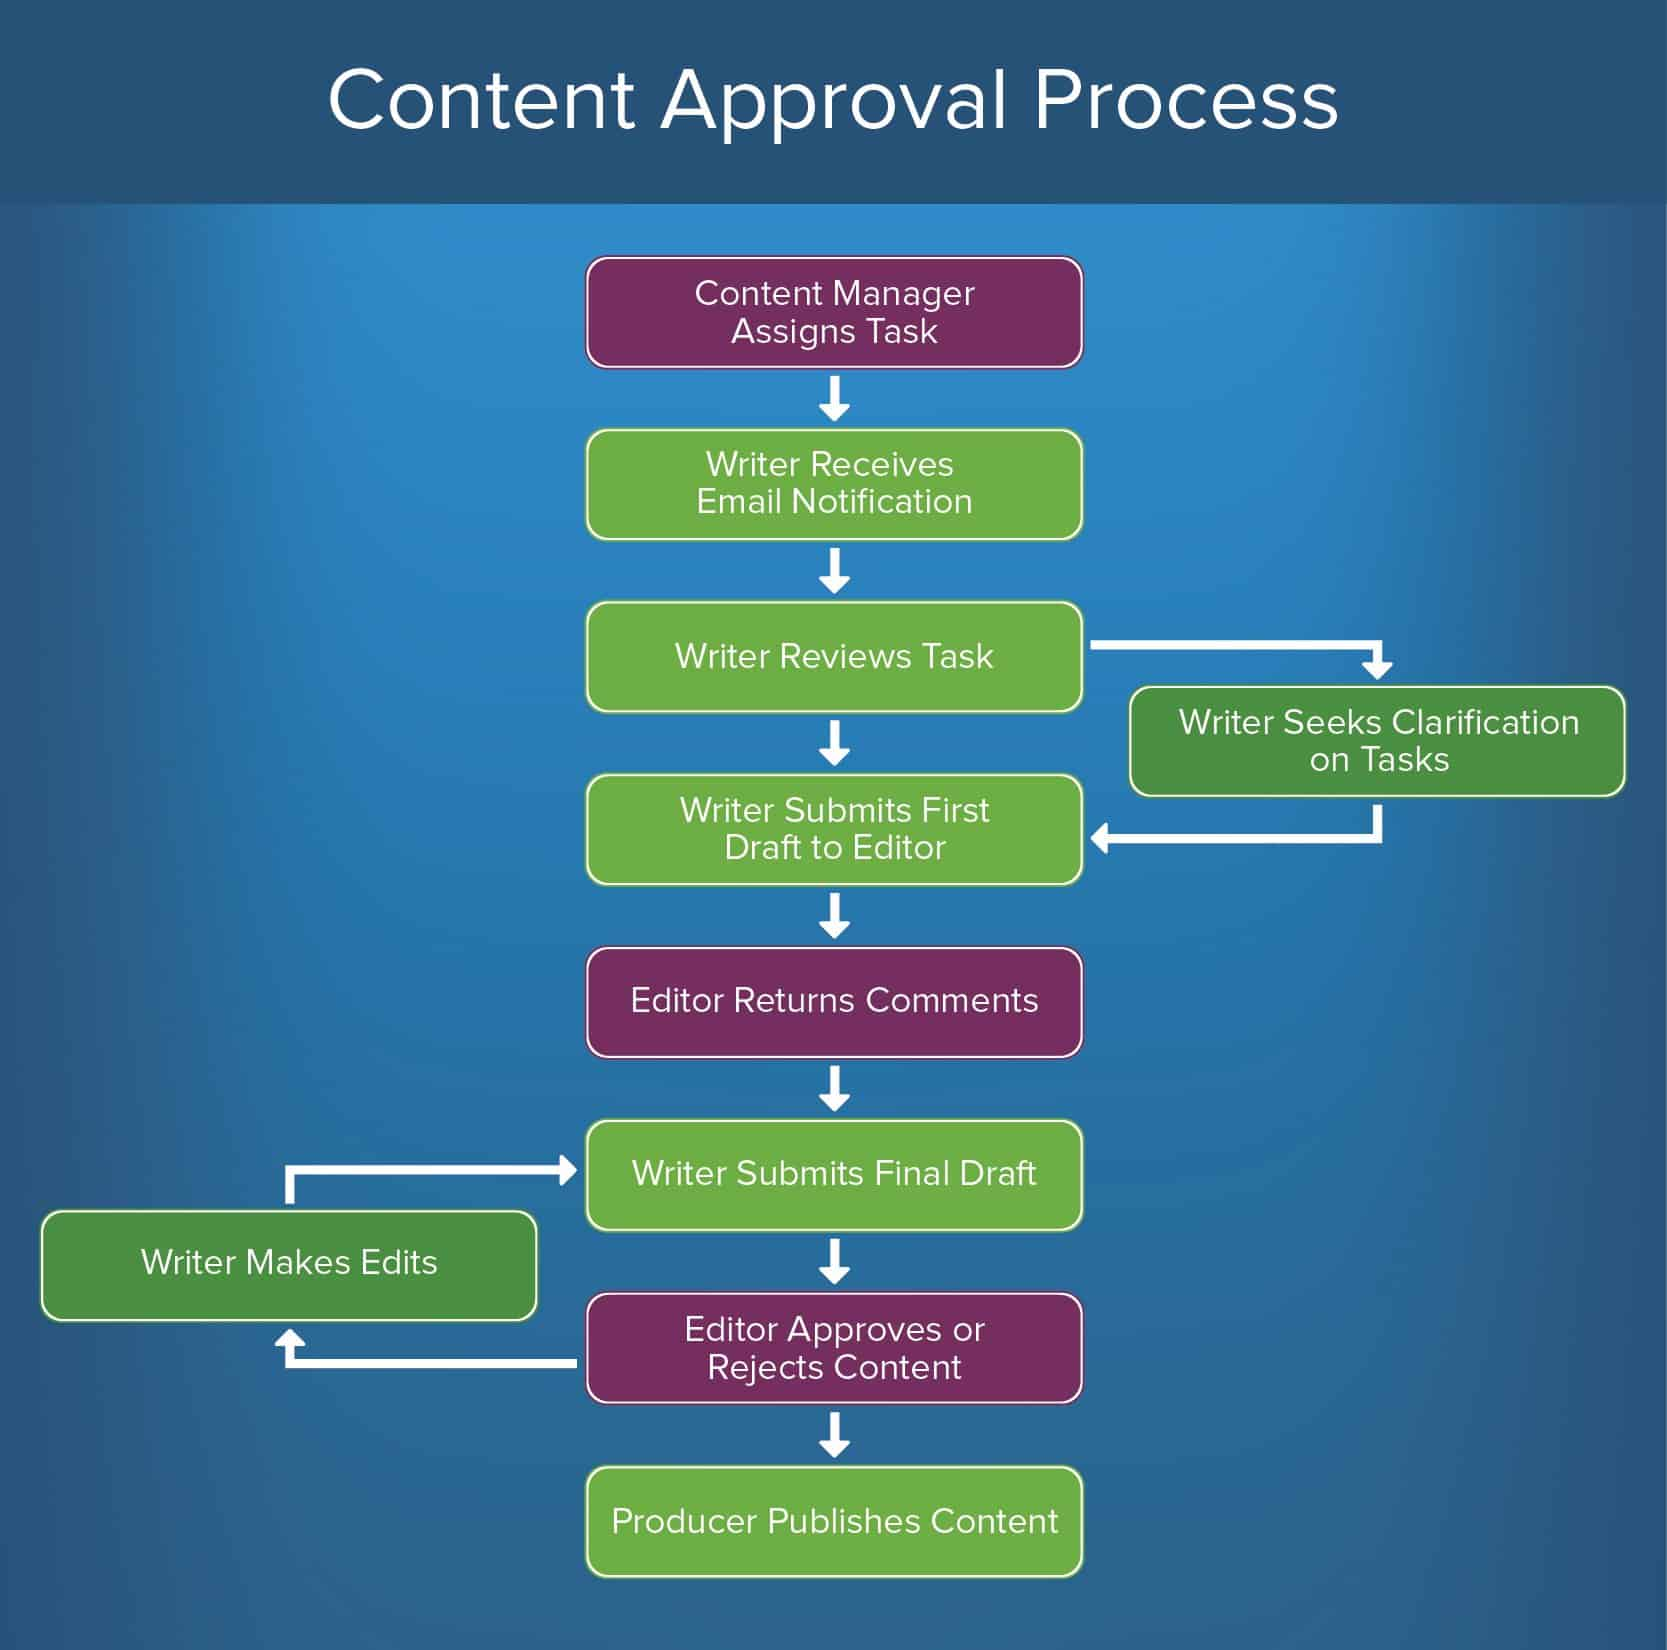 Content Approval Process Diagram